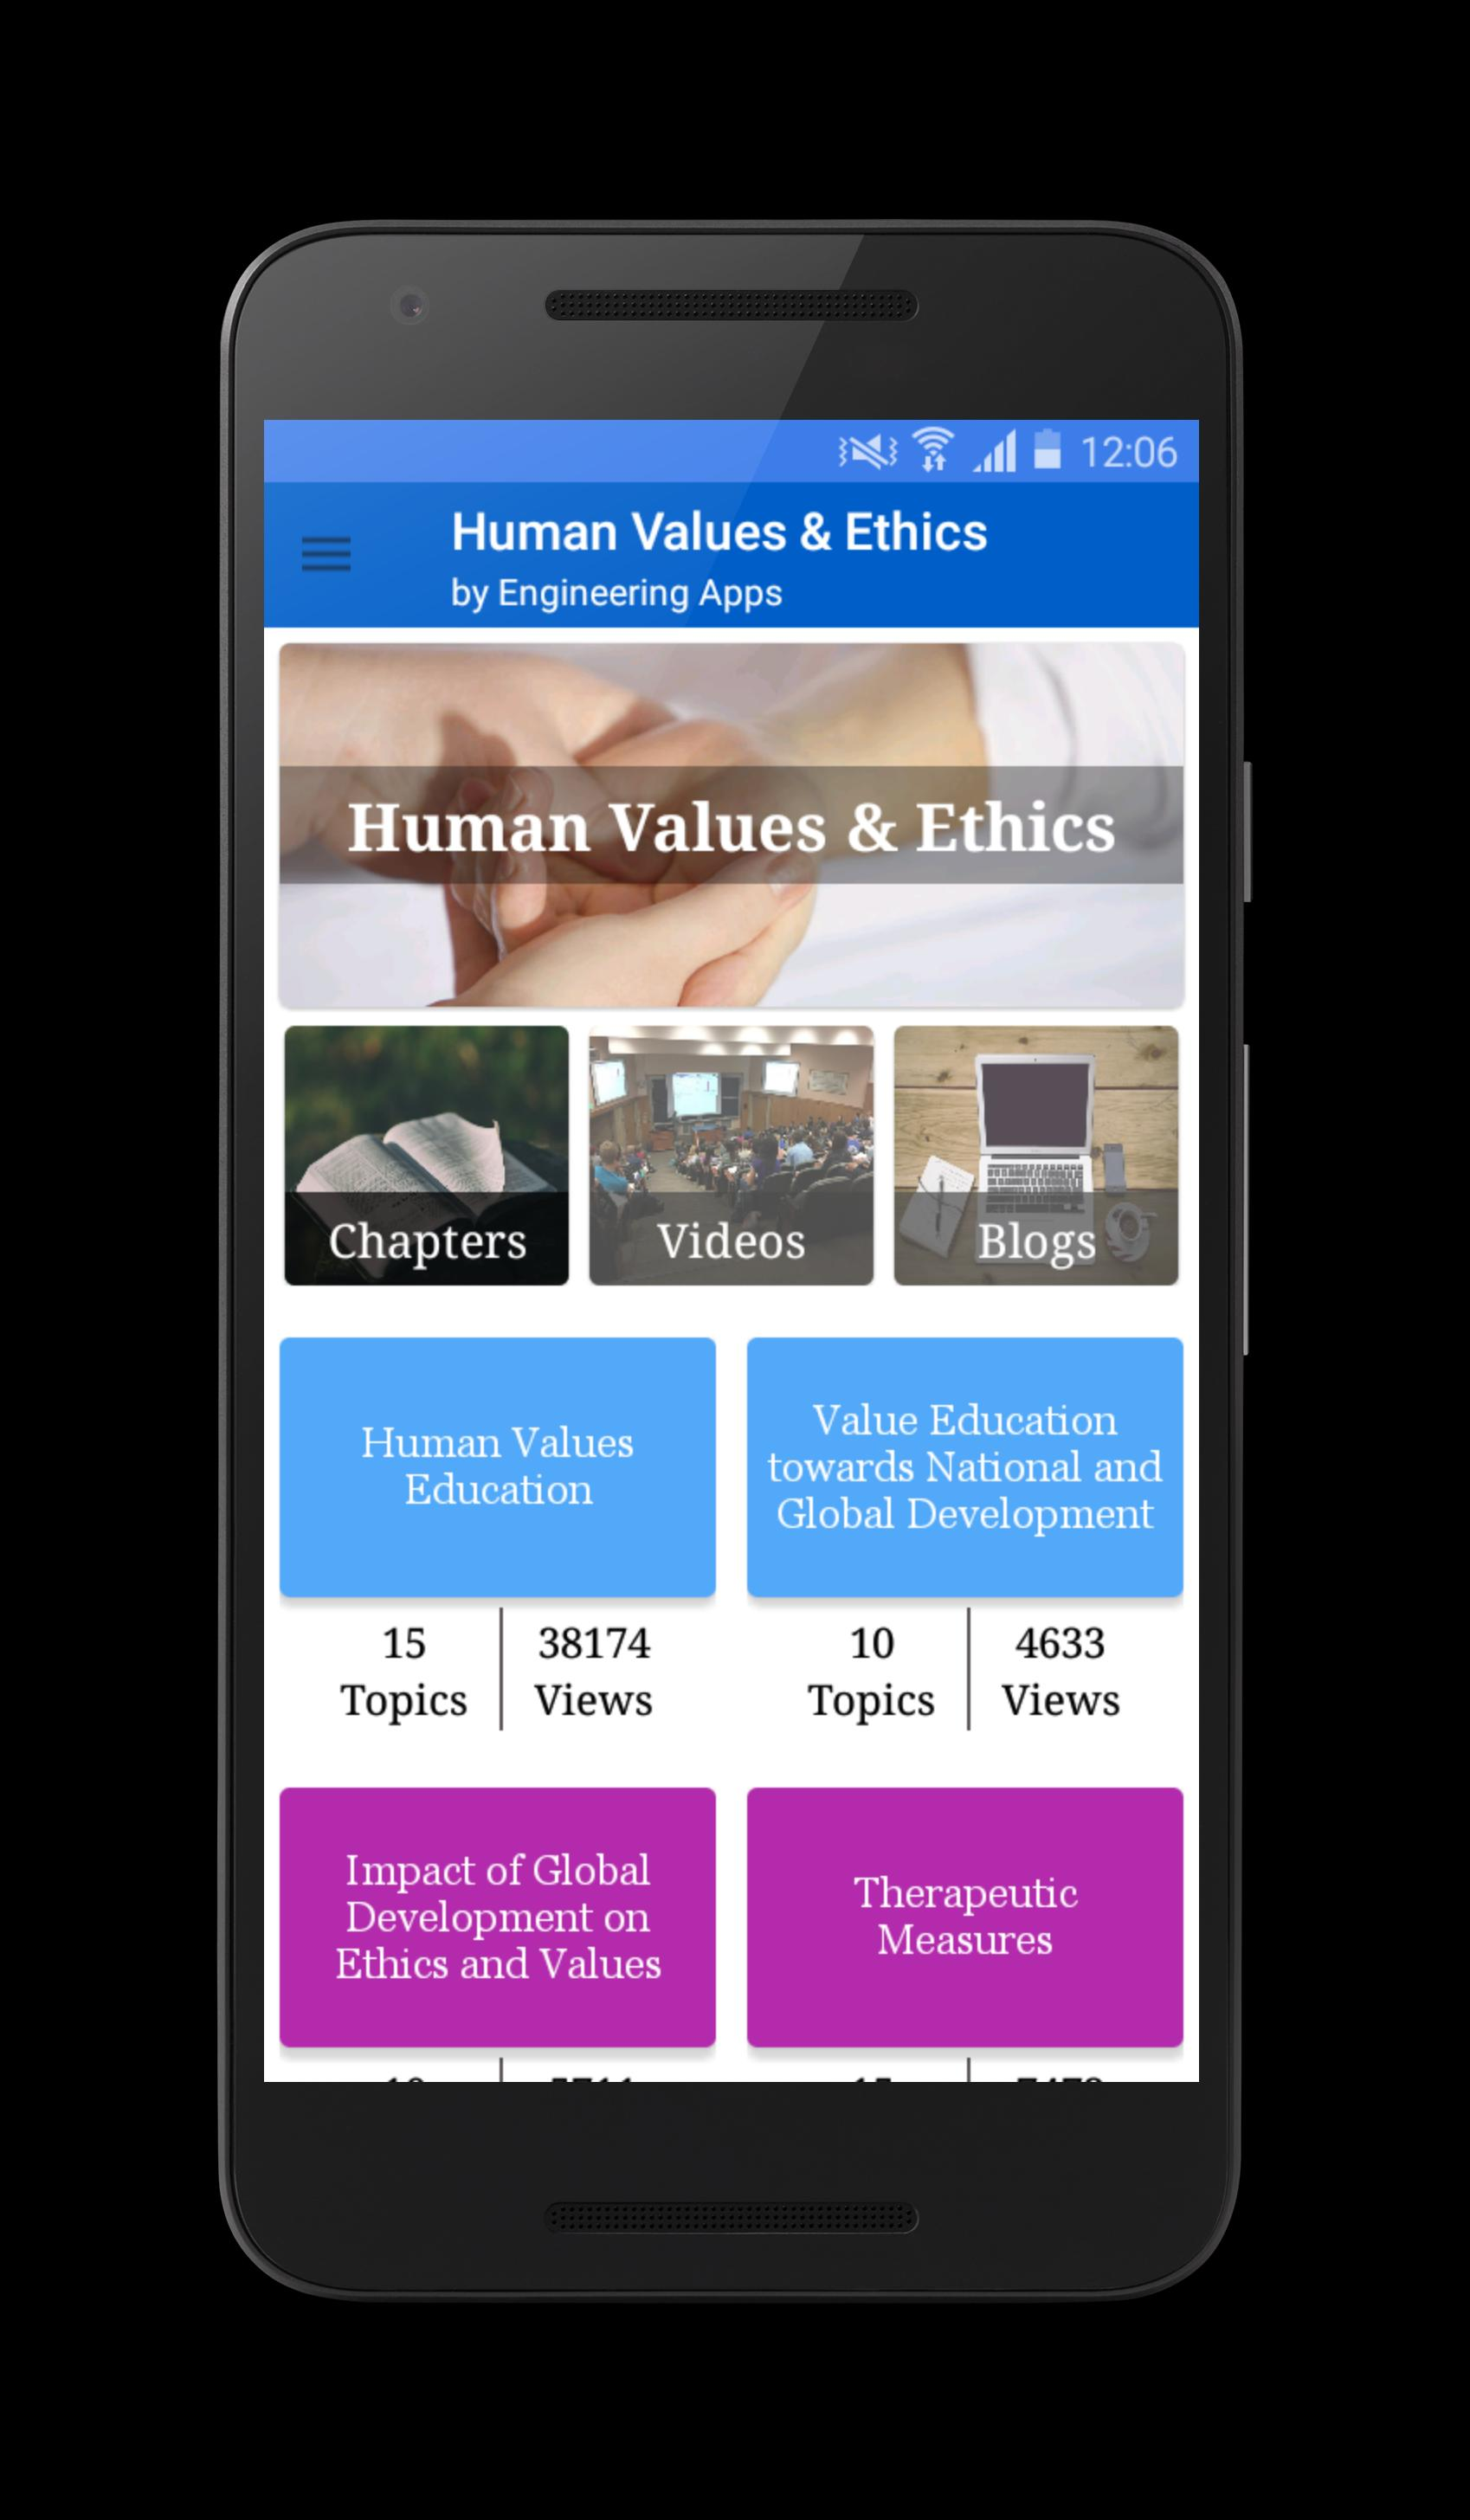 Human Values & Ethics for Android - APK Download